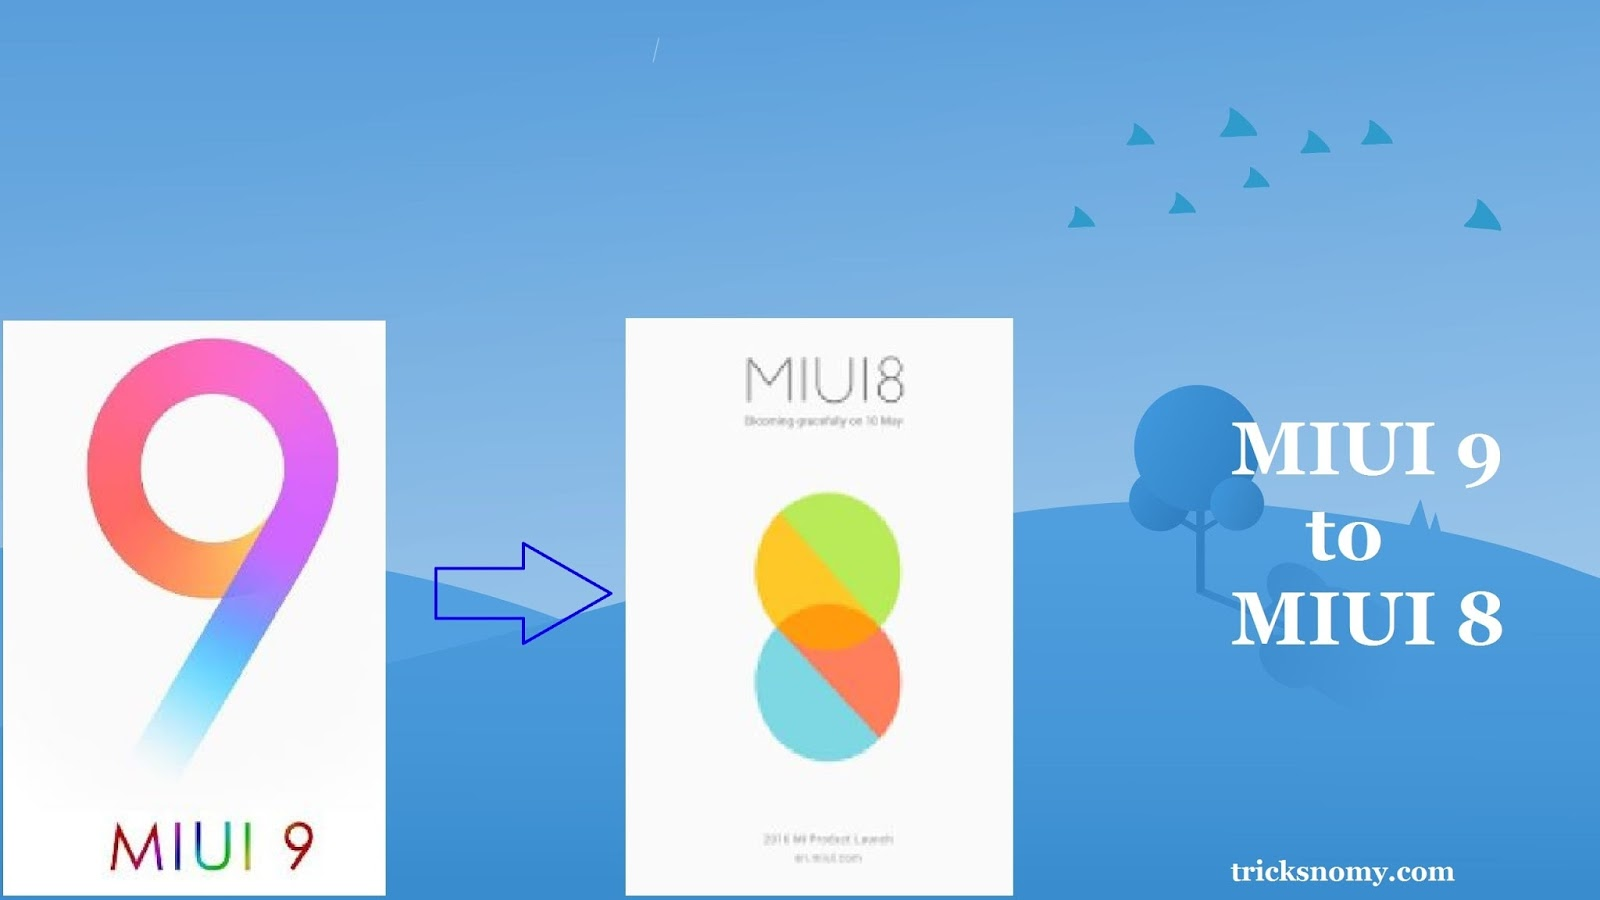 How to downgrade from miui 9 to miui 8 in any xiaomi devices how to downgrade from miui 9 to miui 8 stopboris Images